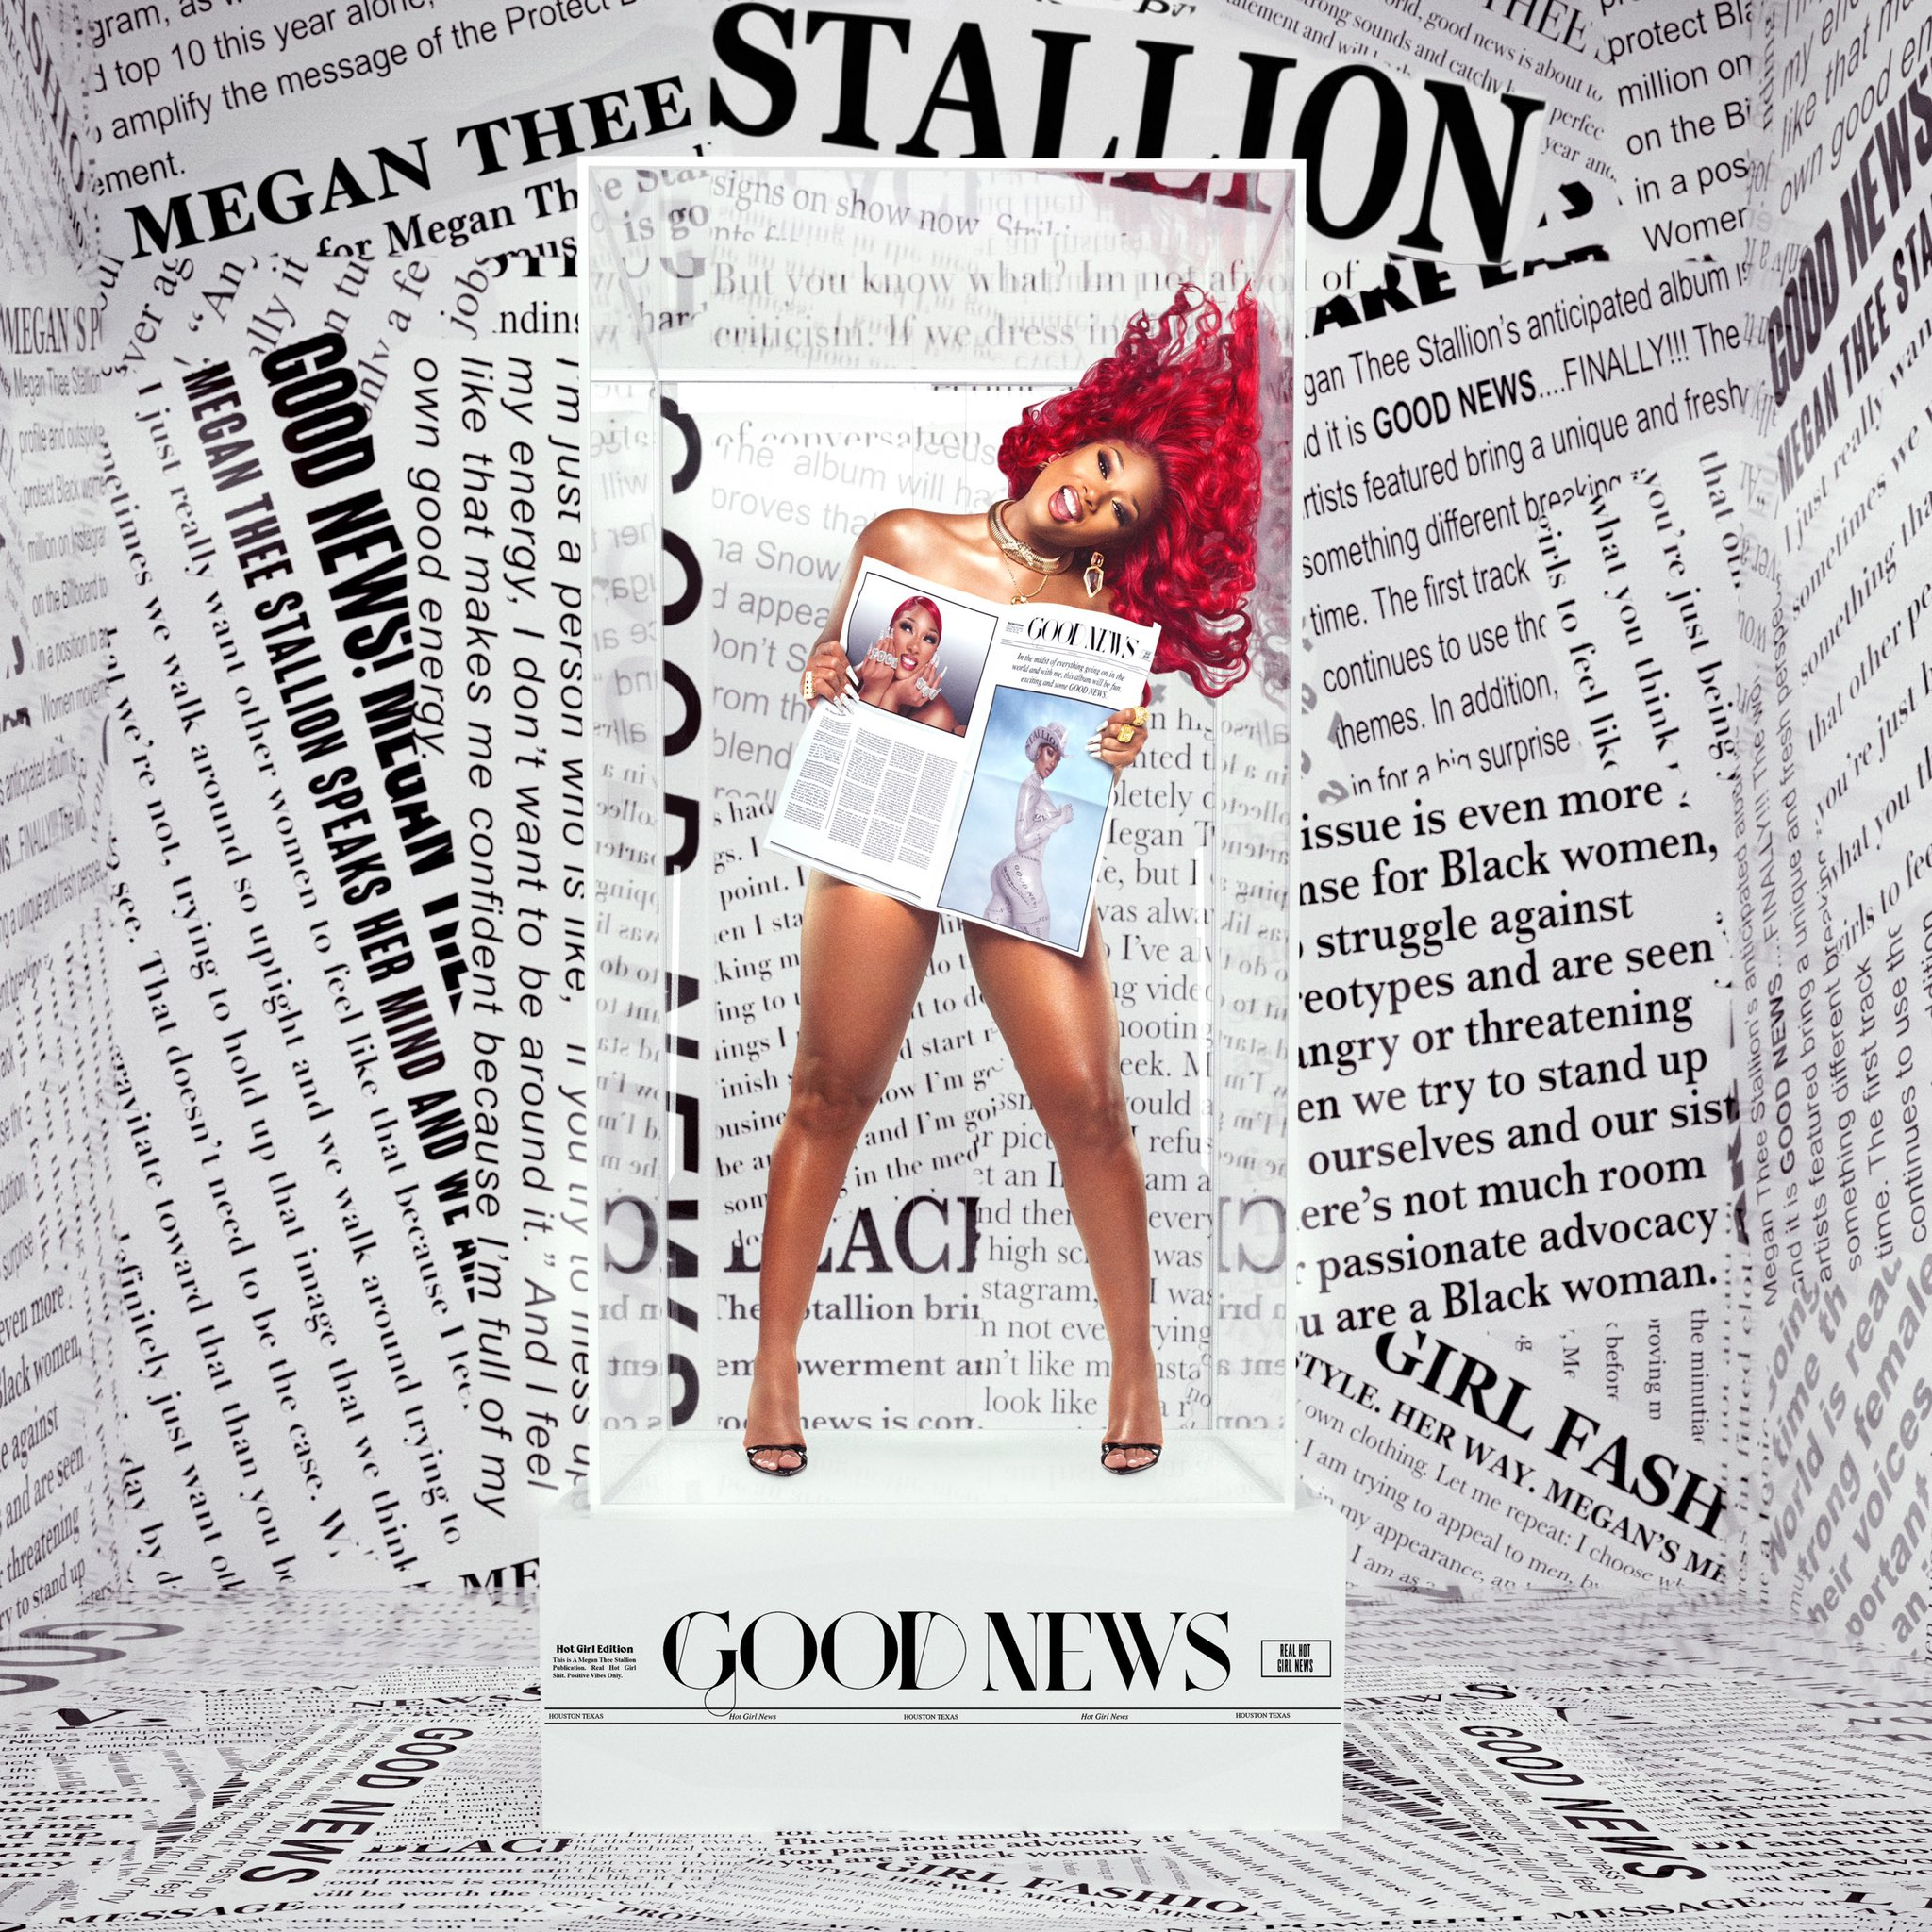 megan-the-stallion-good-news-album-toke-makinwa-loses-defamation-lawsuit-ex-husband-neymar-out-of-brazil-squad-latest-news-global-world-stories-friday-november-2020-style-rave